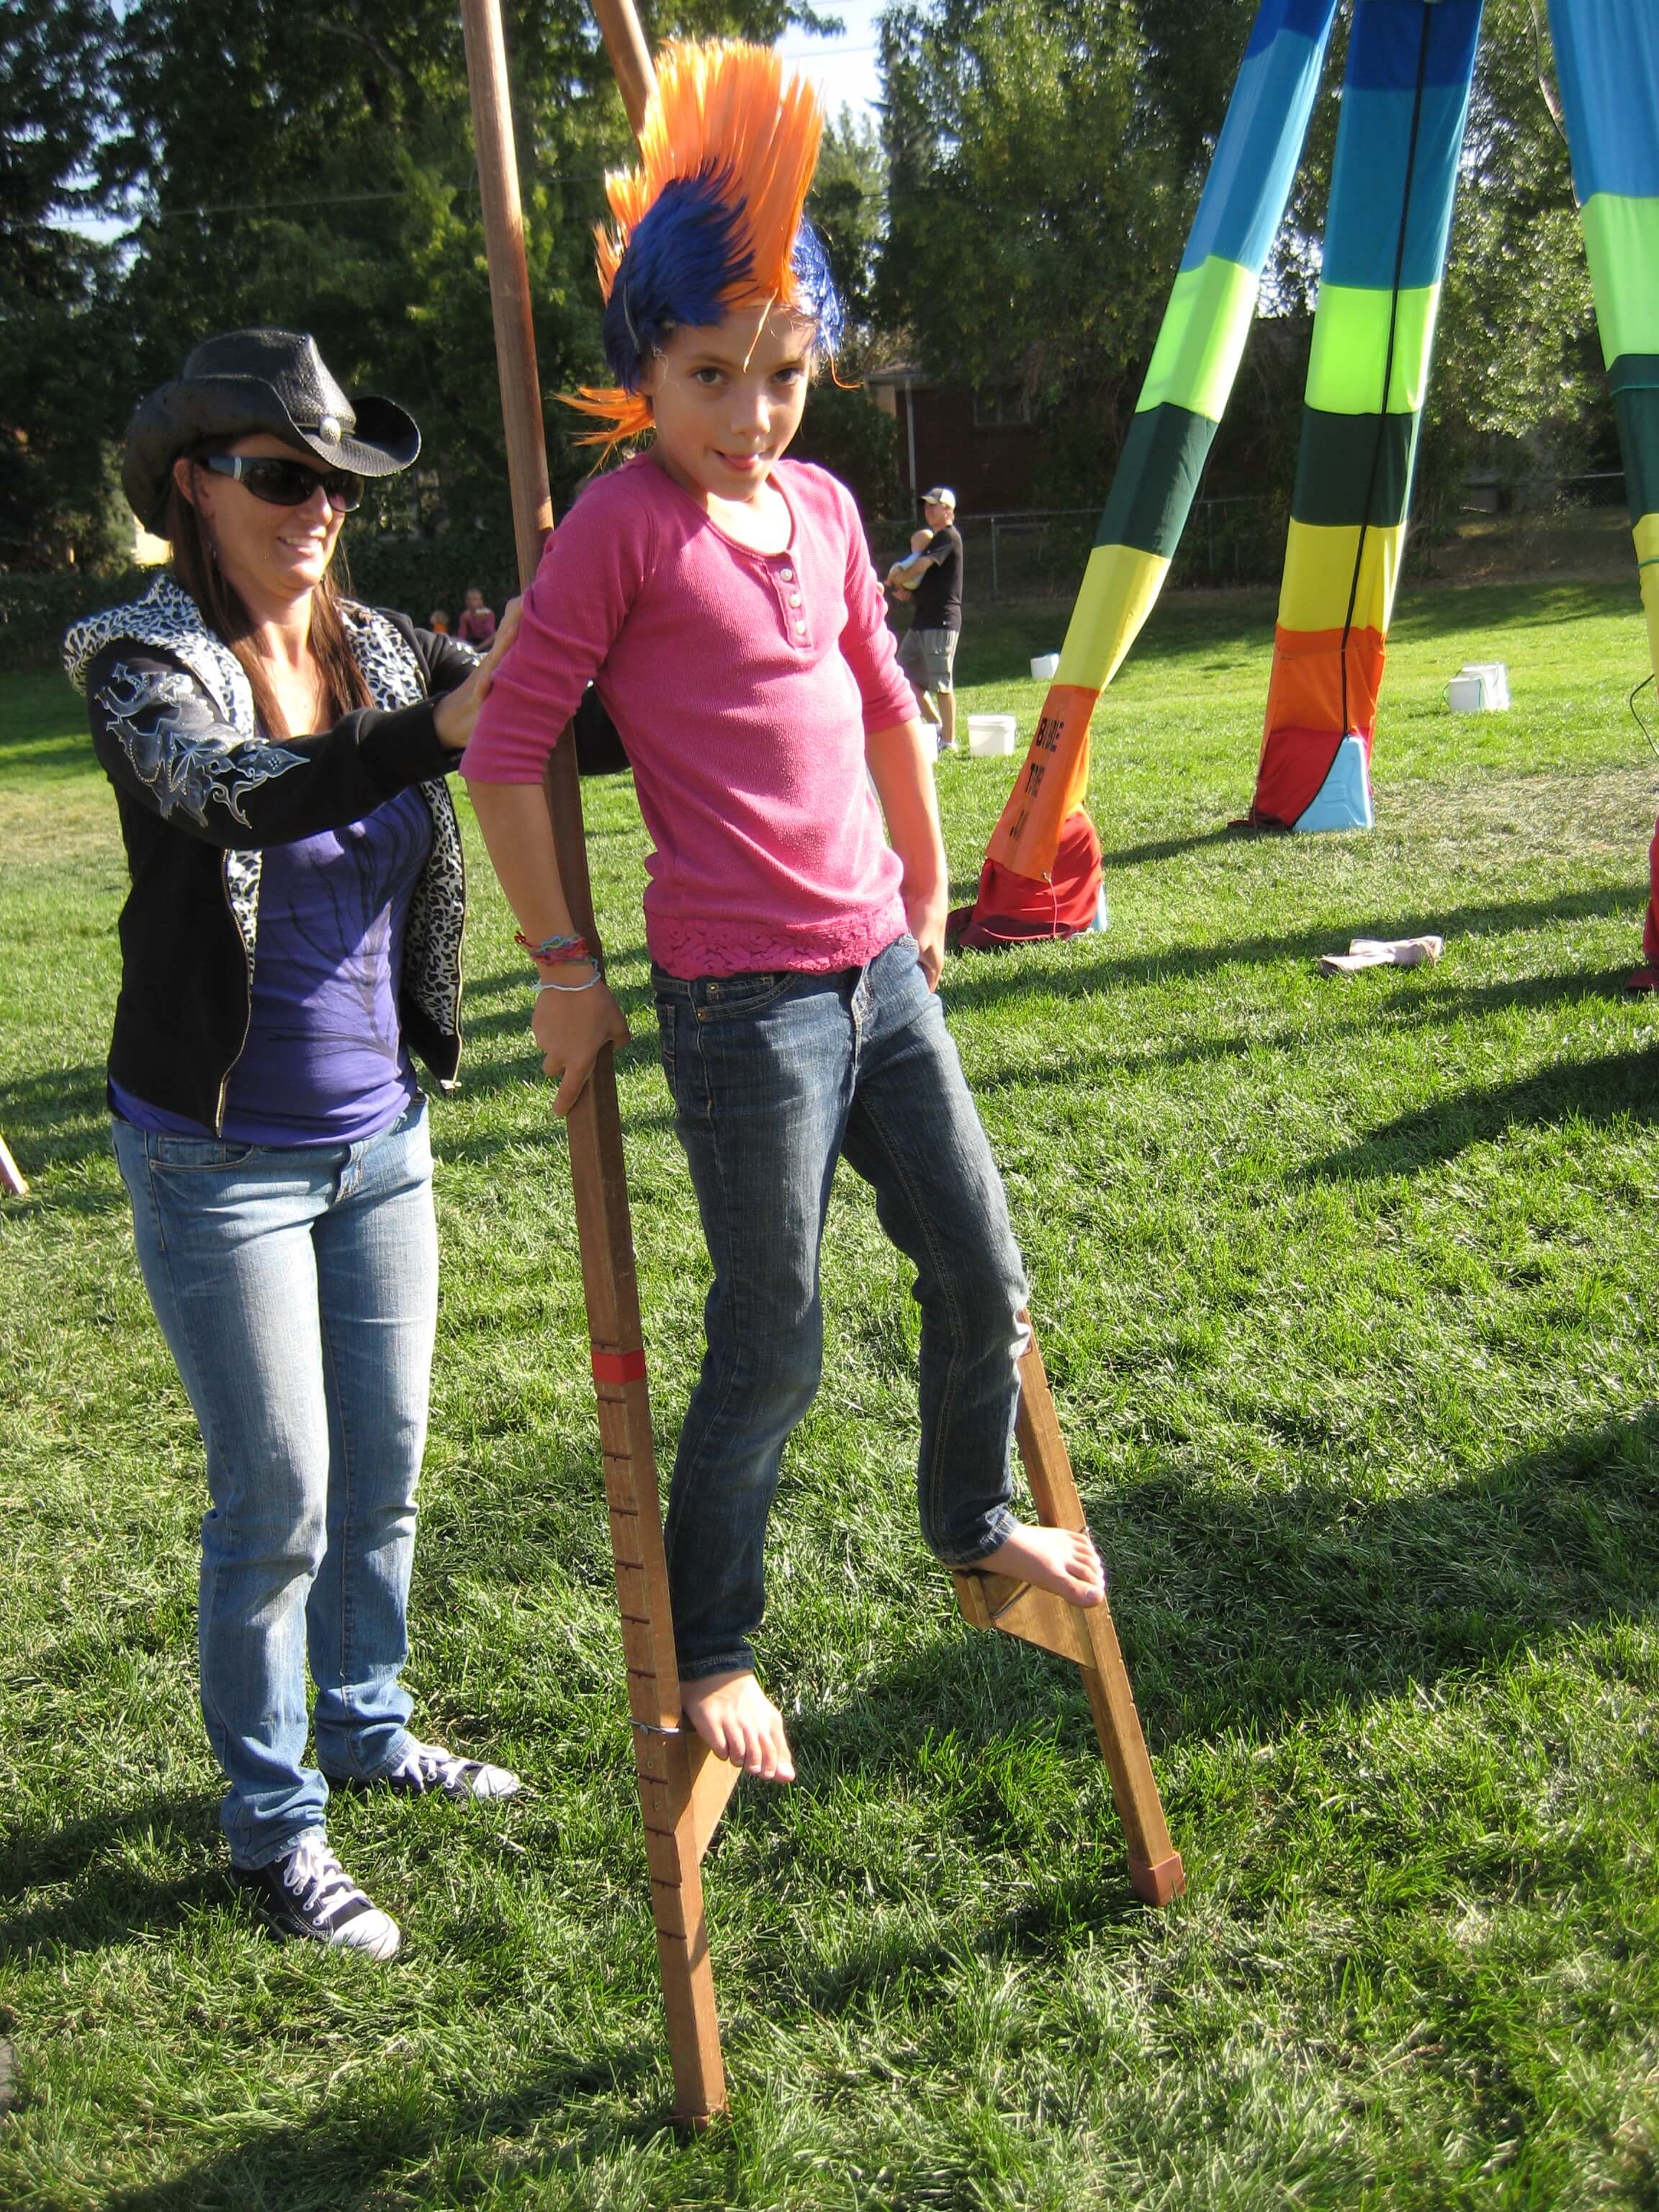 Learning to walk on stilts at Broomfield Days 2010